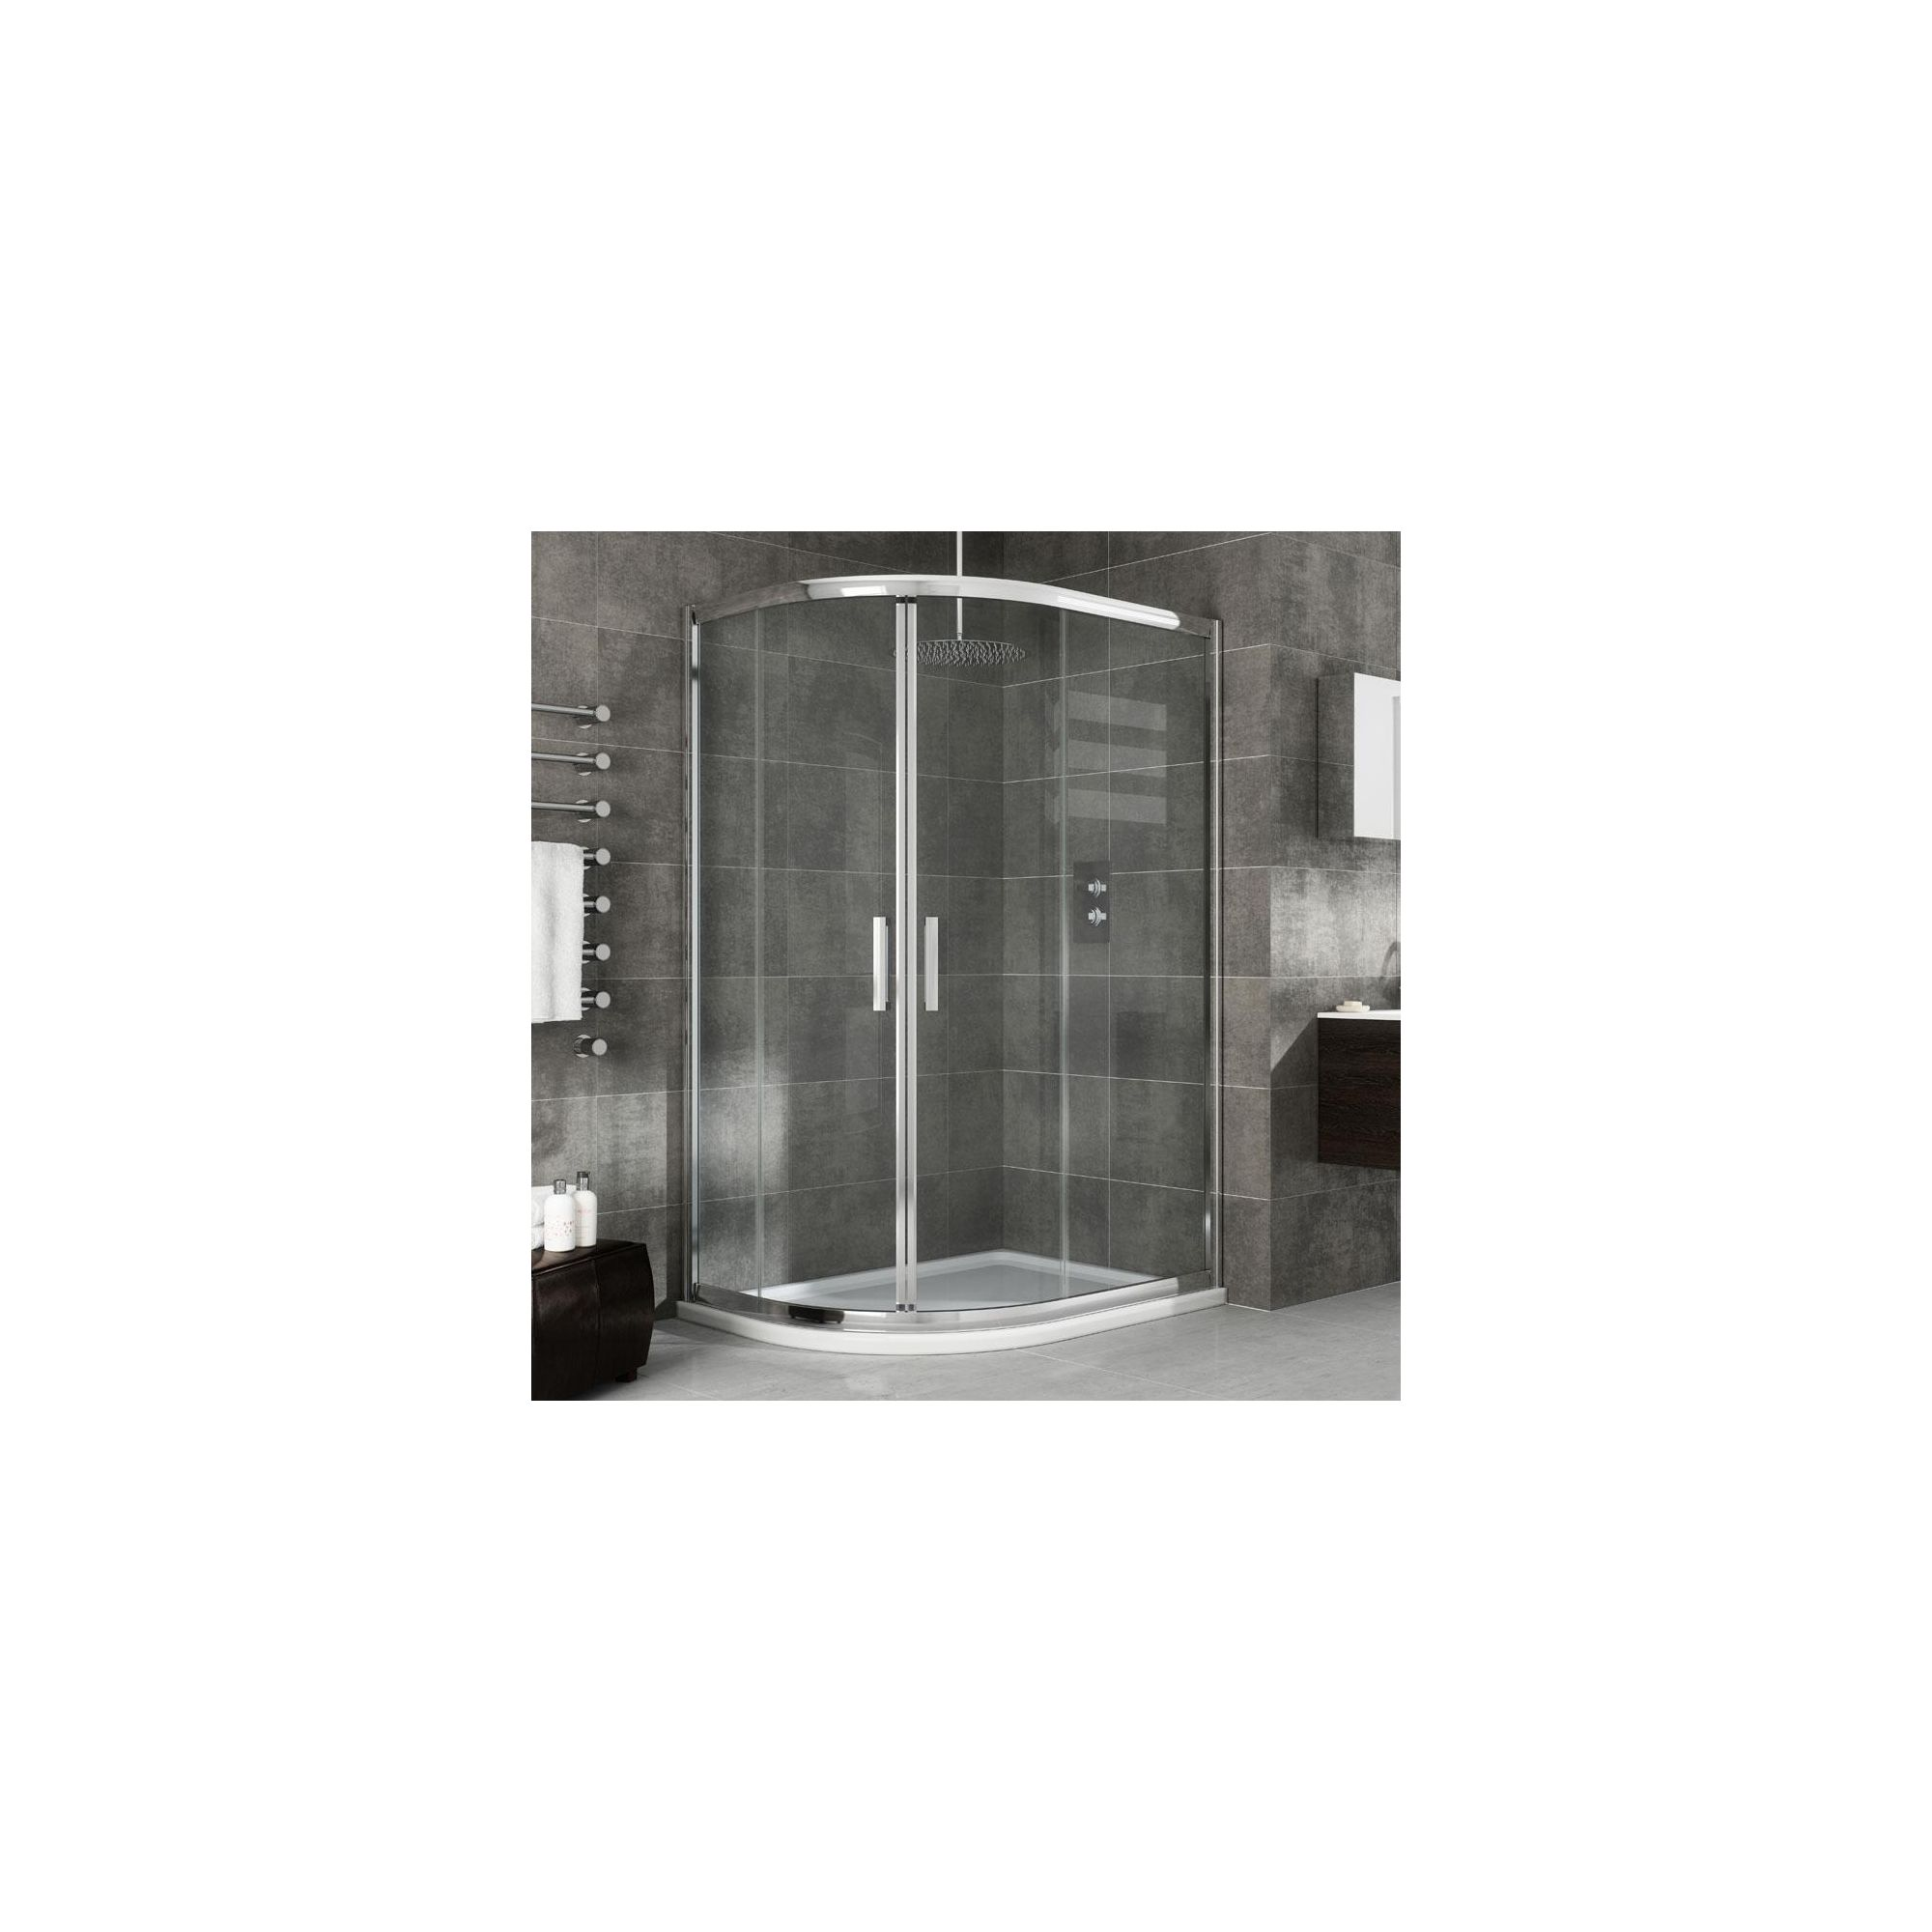 Elemis Eternity Offset Quadrant Shower Enclosure, 1000mm x 800mm, 8mm Glass, Low Profile Tray, Right Handed at Tesco Direct